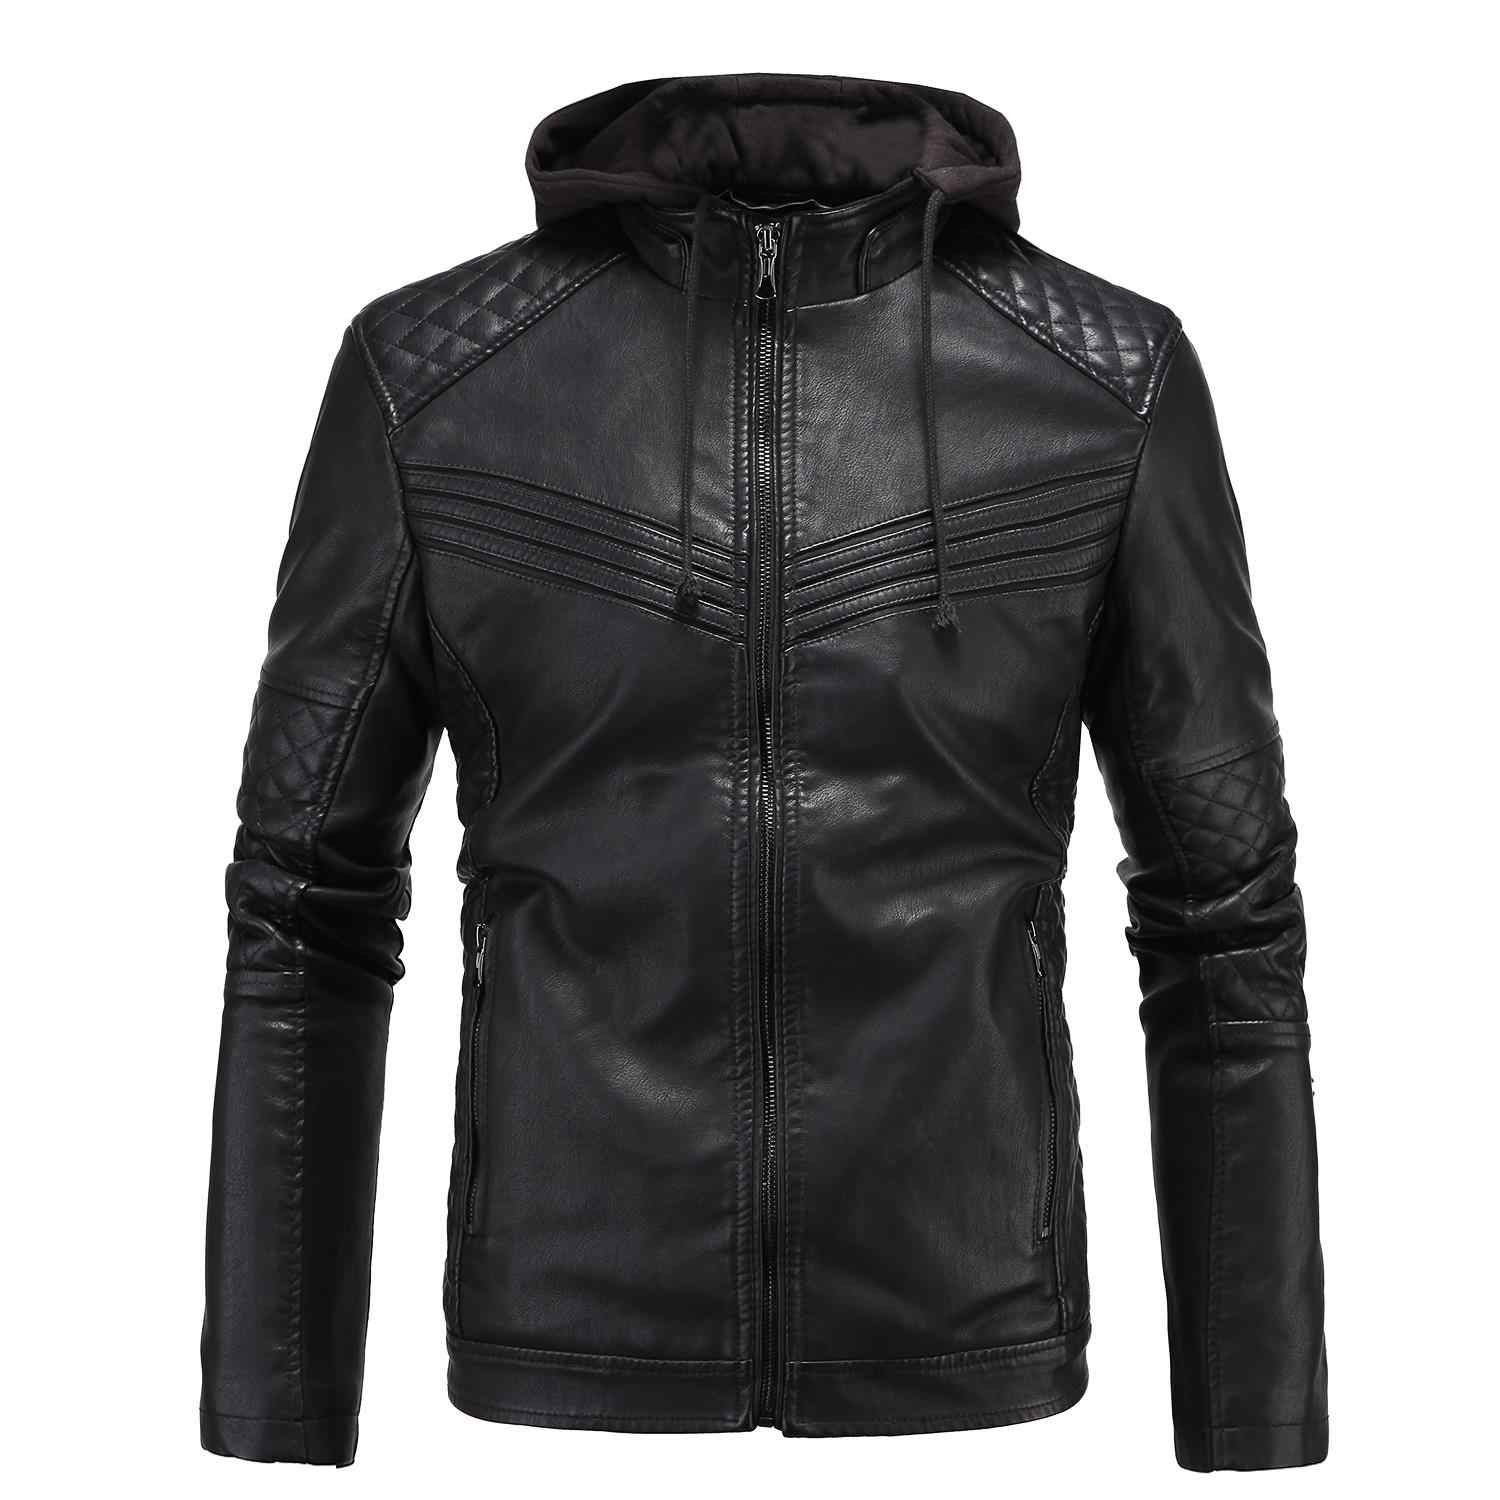 4933c148f9bee Leather Jacket Men Hoodie Fashion PU Leather Coat Male Motorcycle Jackets  Jaqueta Couro Brand Thickens Maintains